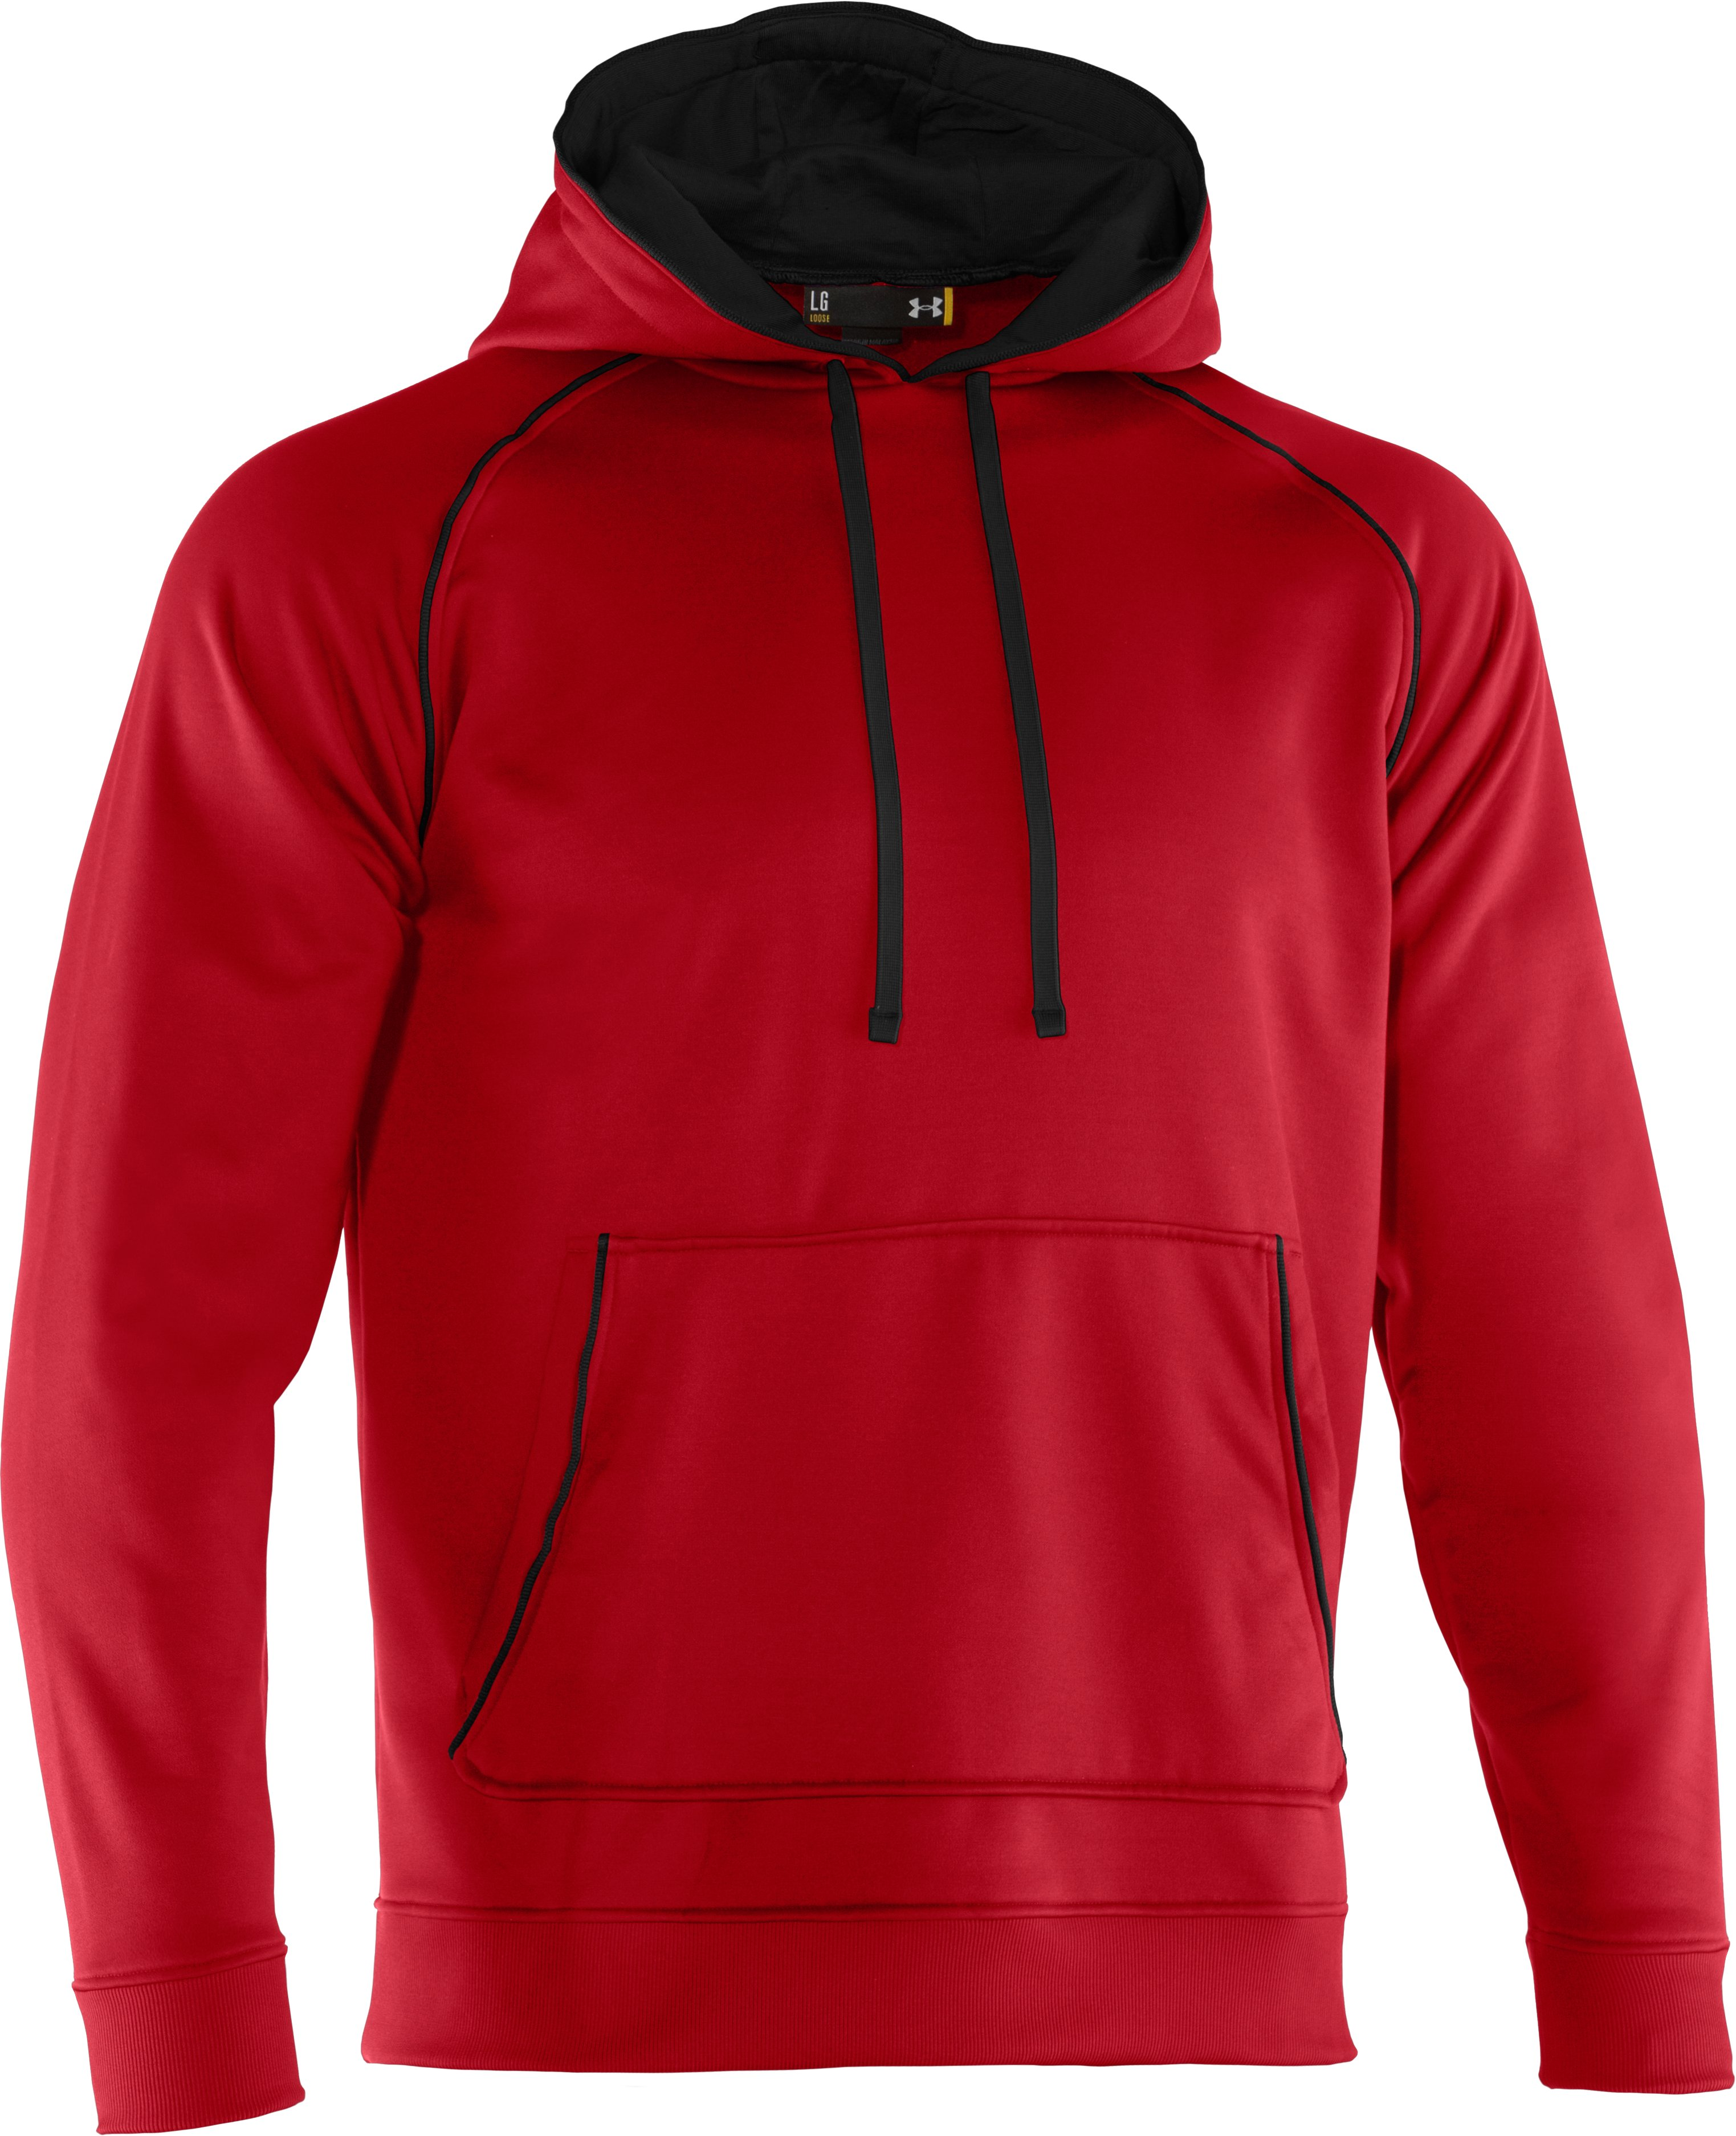 Men's Armour® Fleece Freshness Hoodie, Red